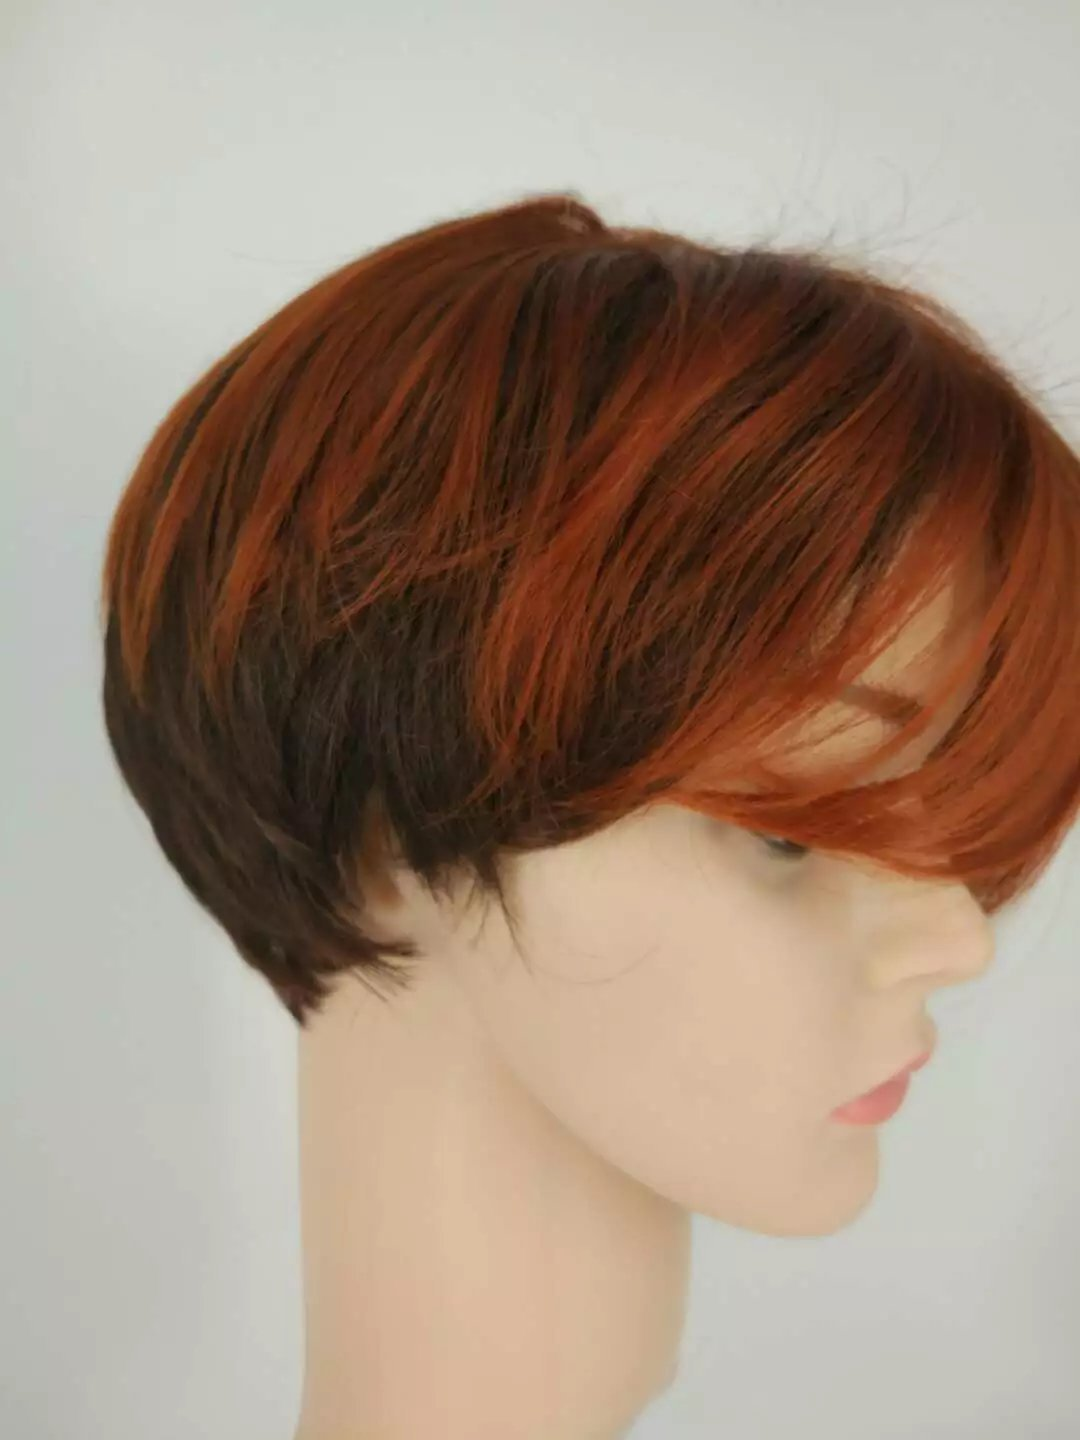 Amazon.com : New Arrival Wigs Perruque Synthetic Women Pelucas Sinteticas Short Straight Wig : Beauty